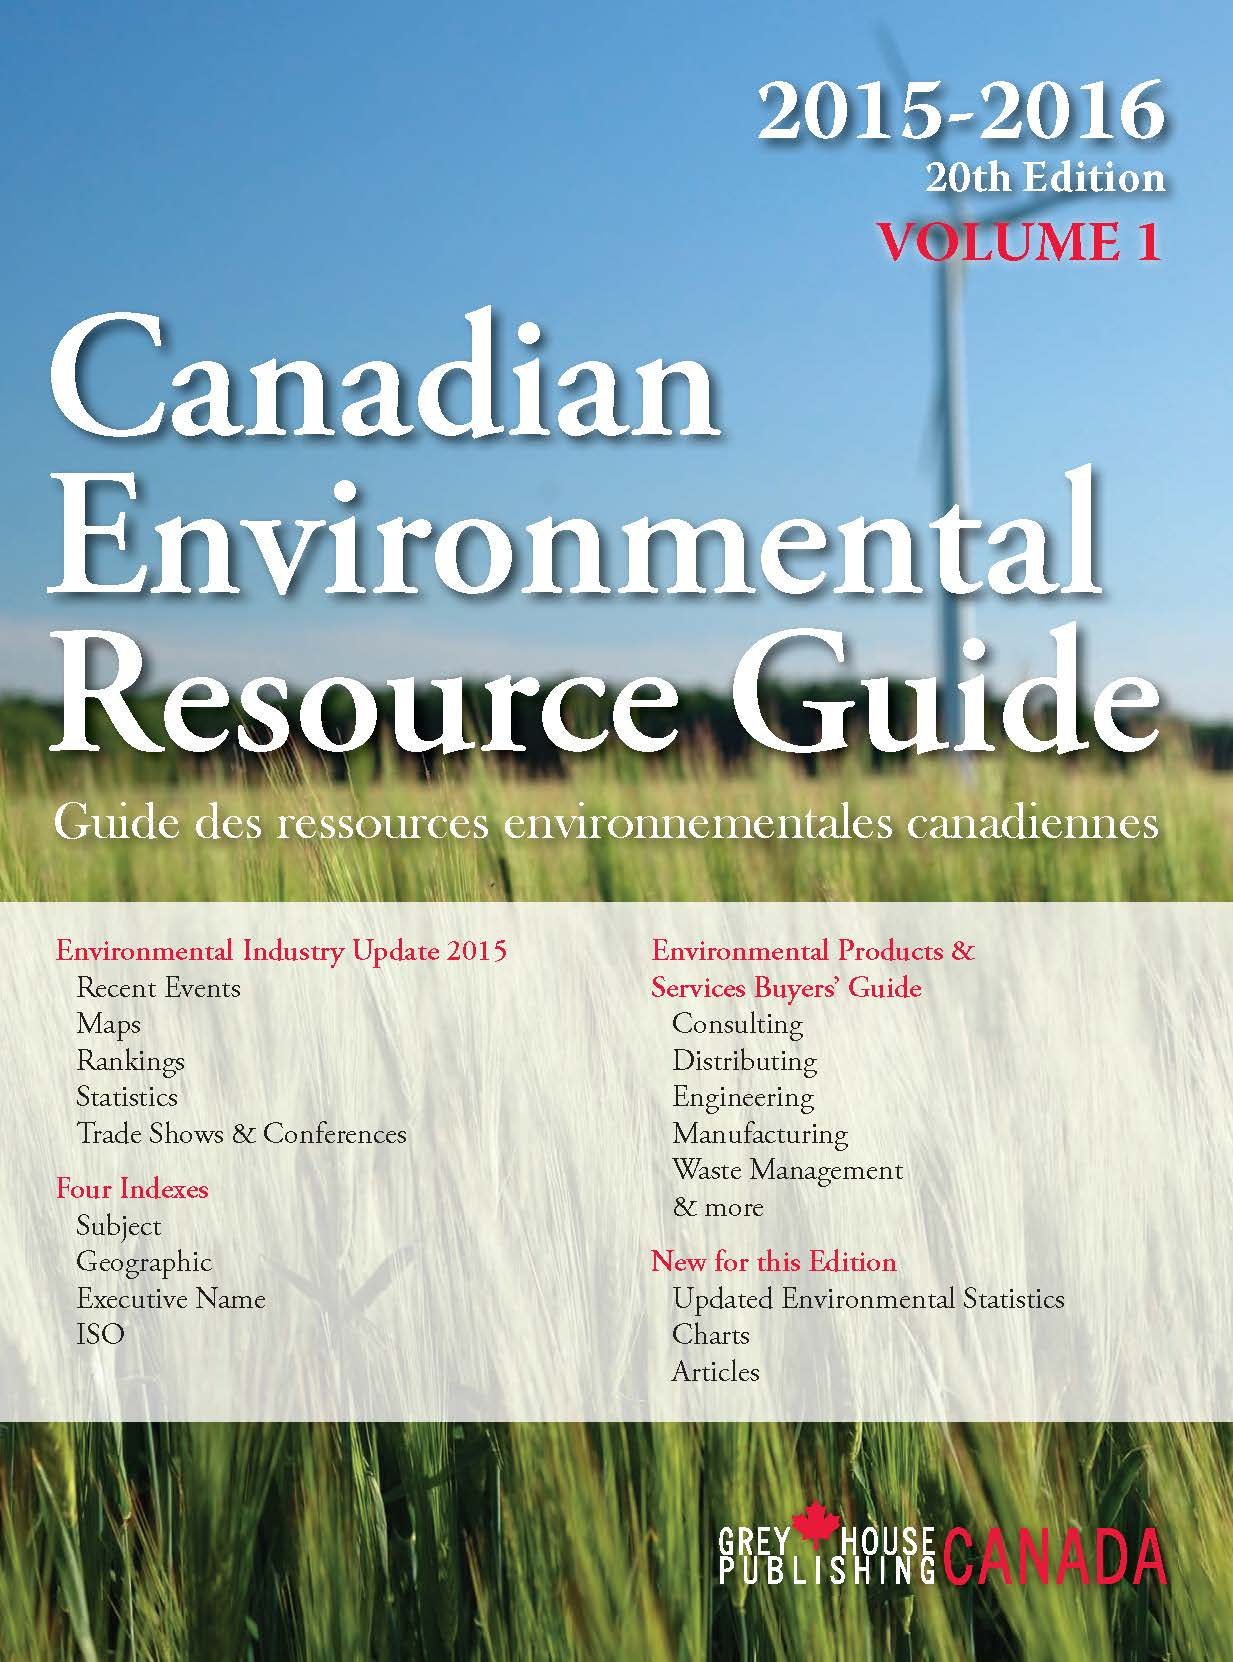 Canadian Environmental Resource Guide